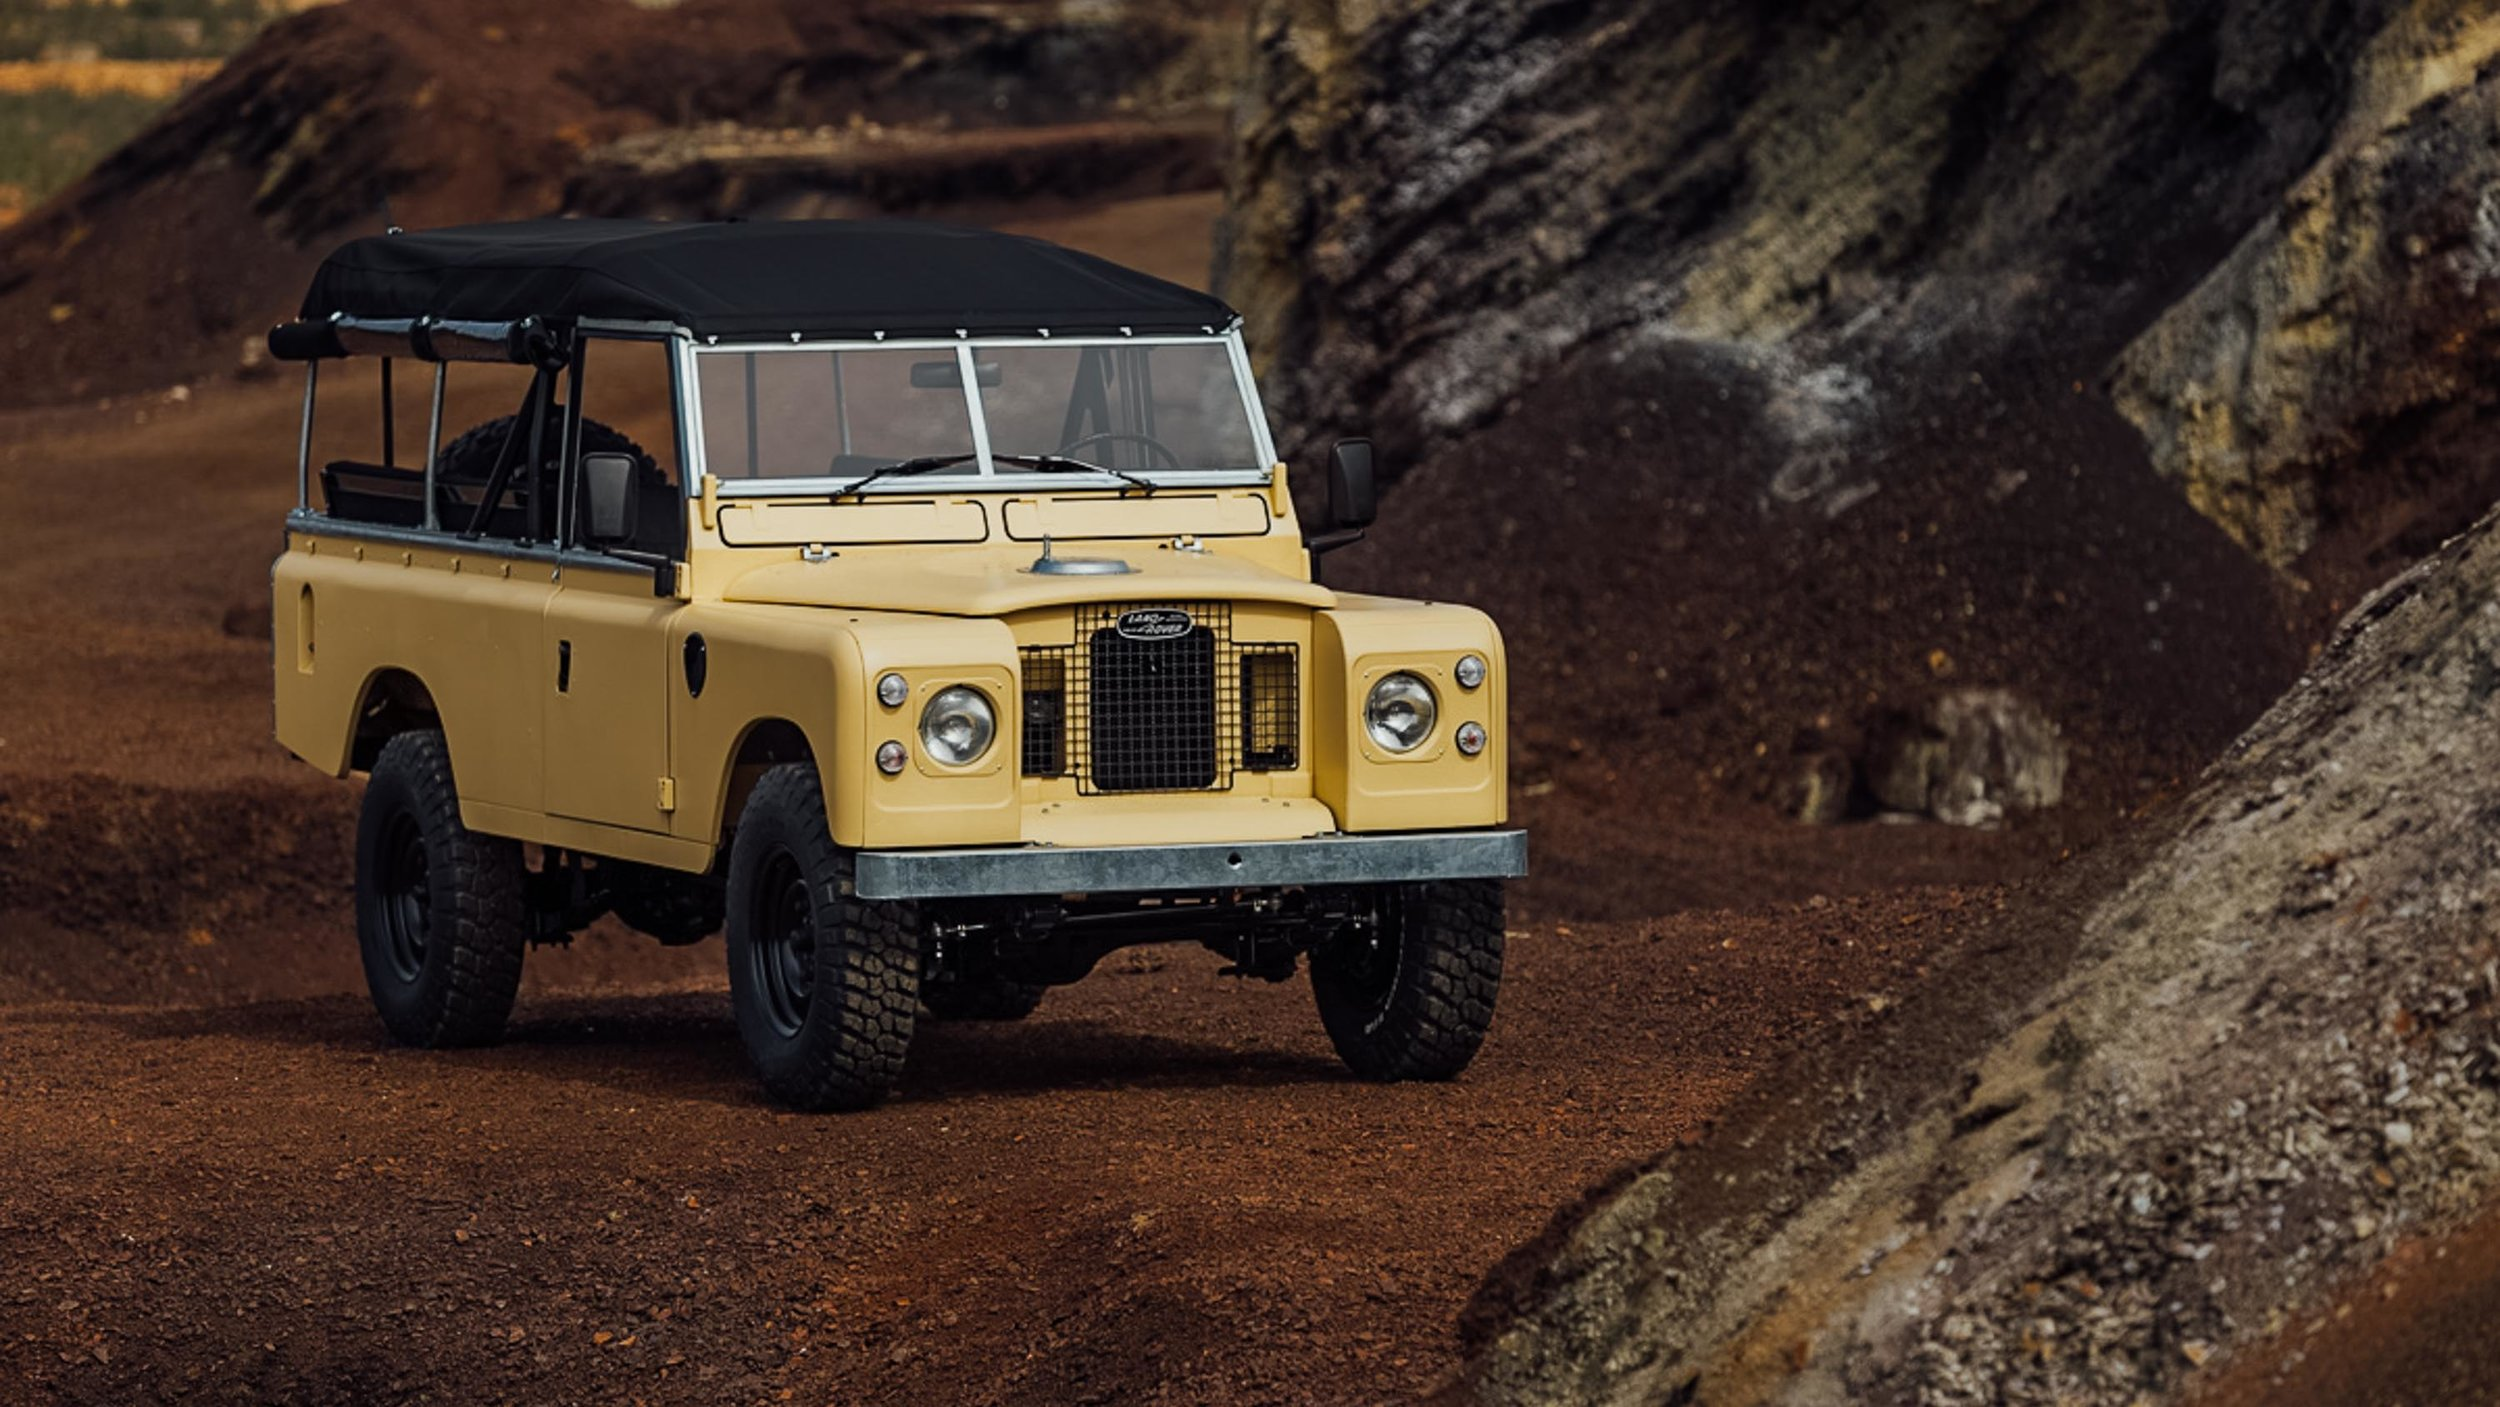 coolnvintage Land Rover S3 (184 of 207).jpg